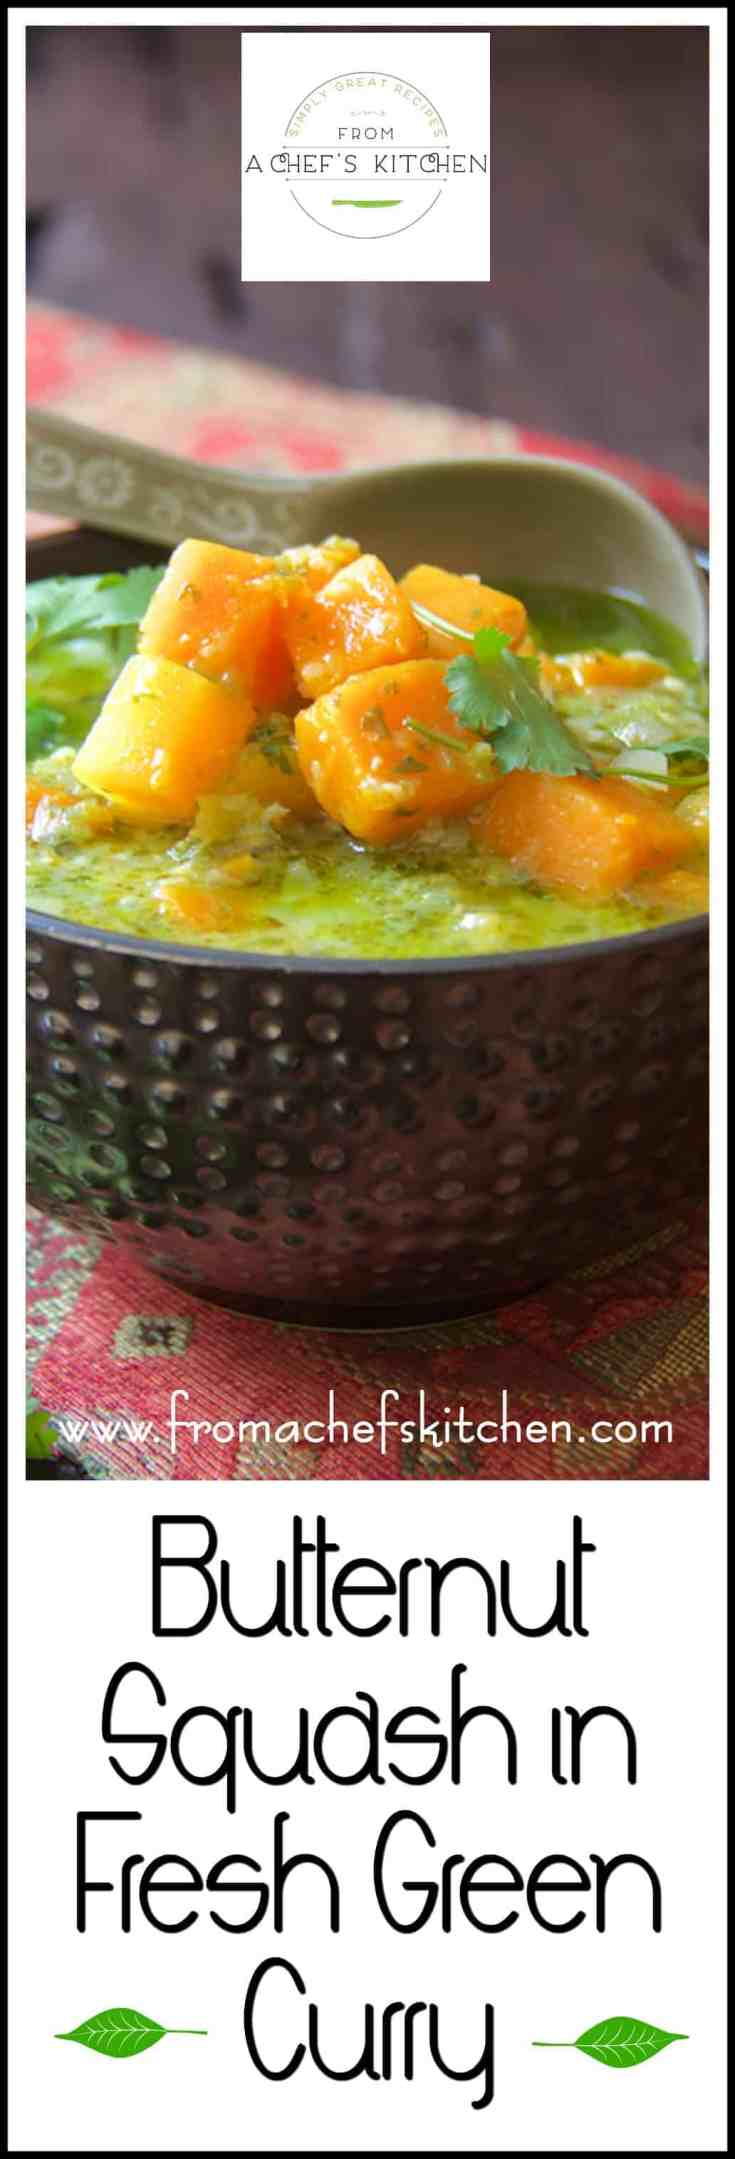 Butternut Squash in Fresh Green Curry has the light fruitiness of coconut milk, citrusy cilantro, the seductiveness of ginger and garlic and hot green chiles for a lively, fresh vegetarian main course. #butternutsquash #butternutsquashrecipes #veganrecipes #veganThai #veganThairecipes